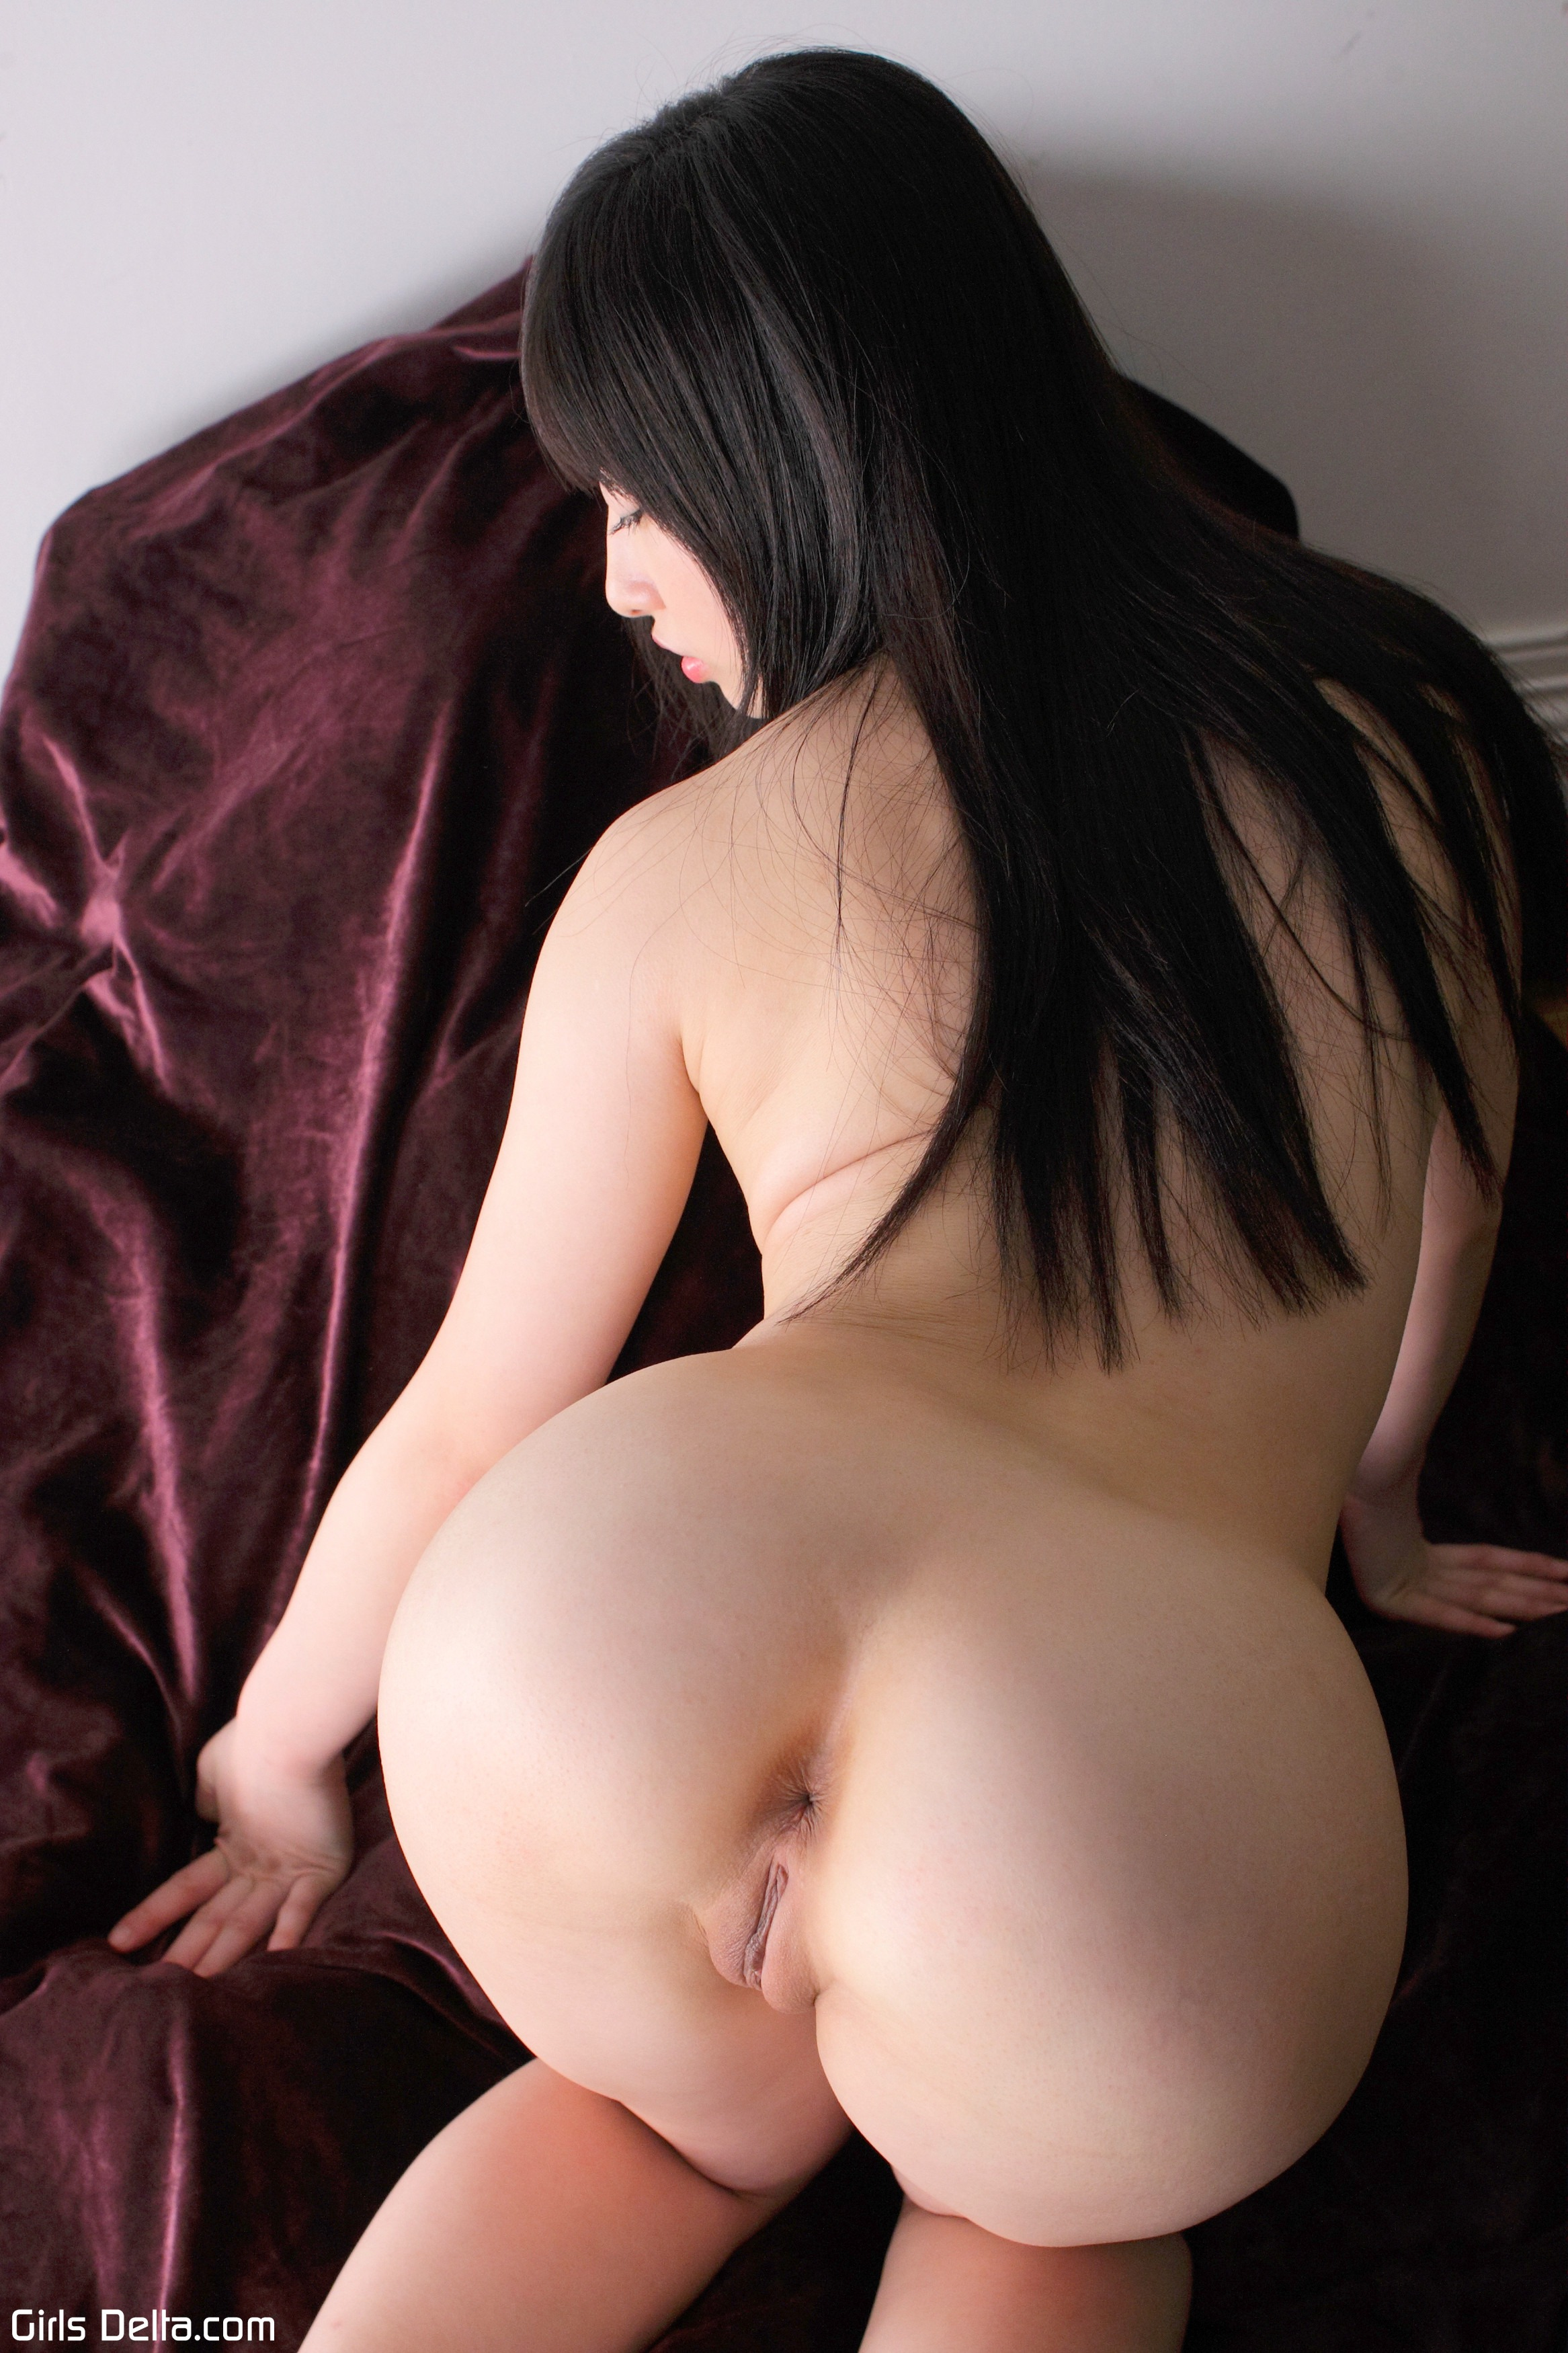 private life of tarra white the adult empire